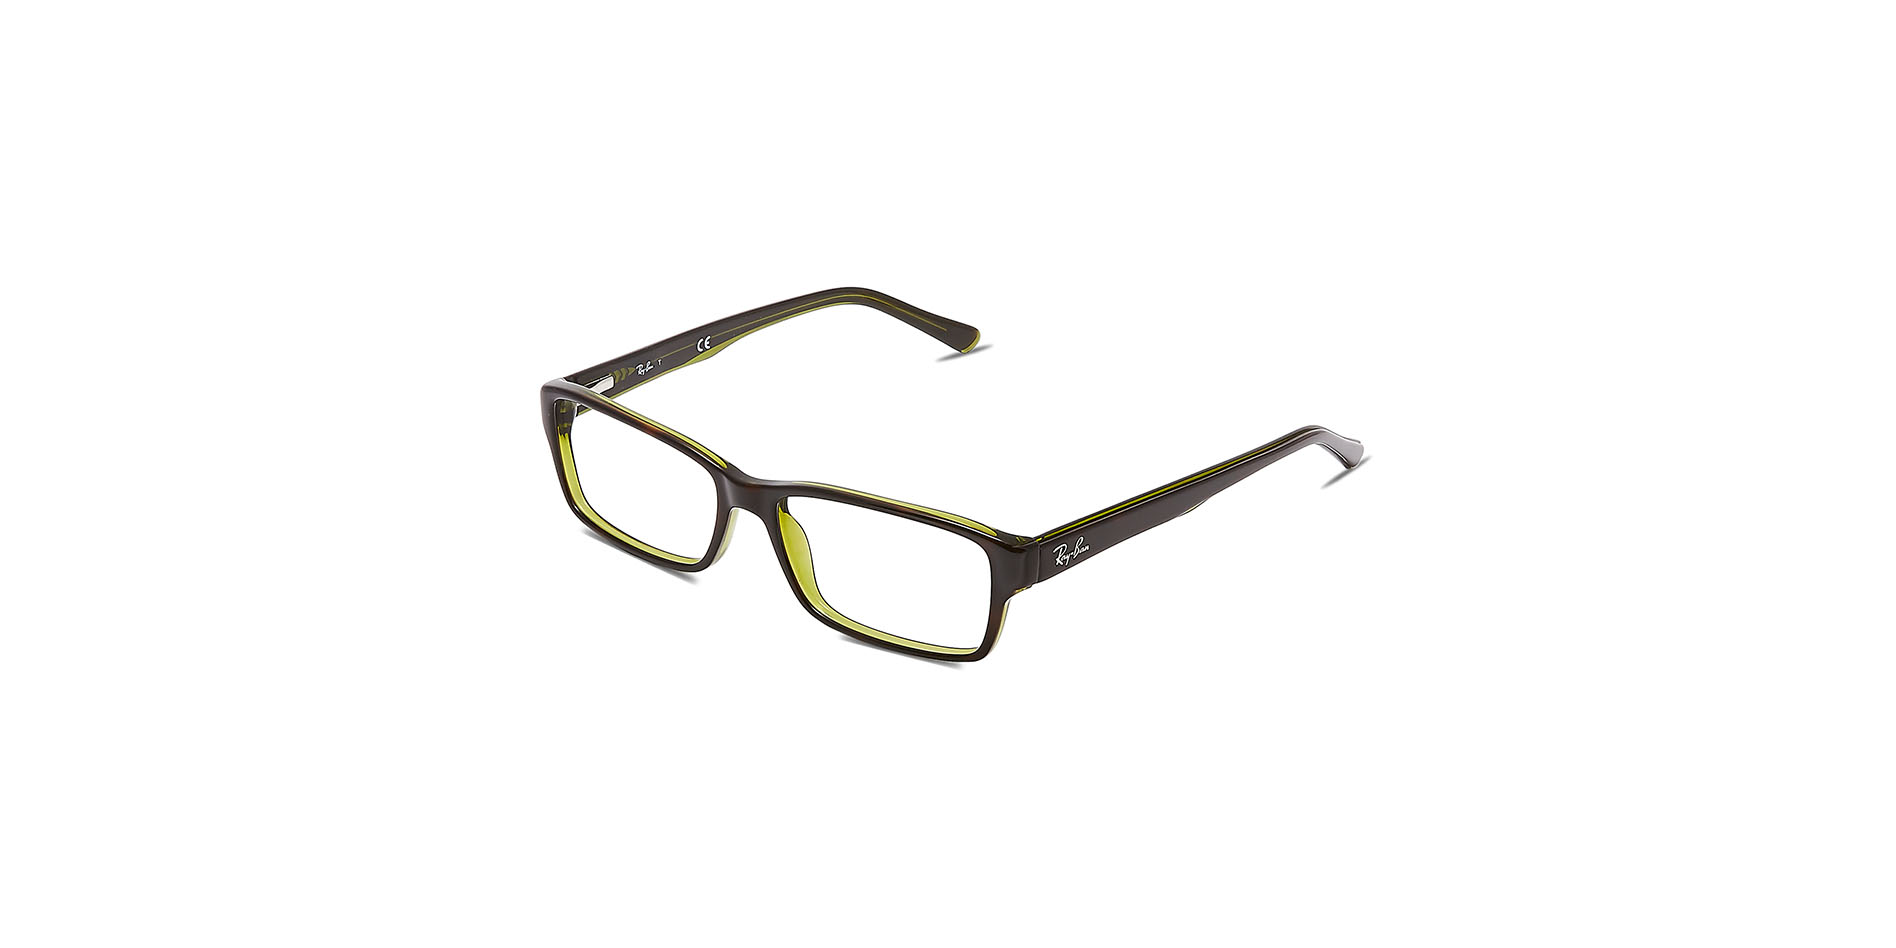 Occhiali da vista donna in materiale sintetico, Ray-Ban, RB 5169